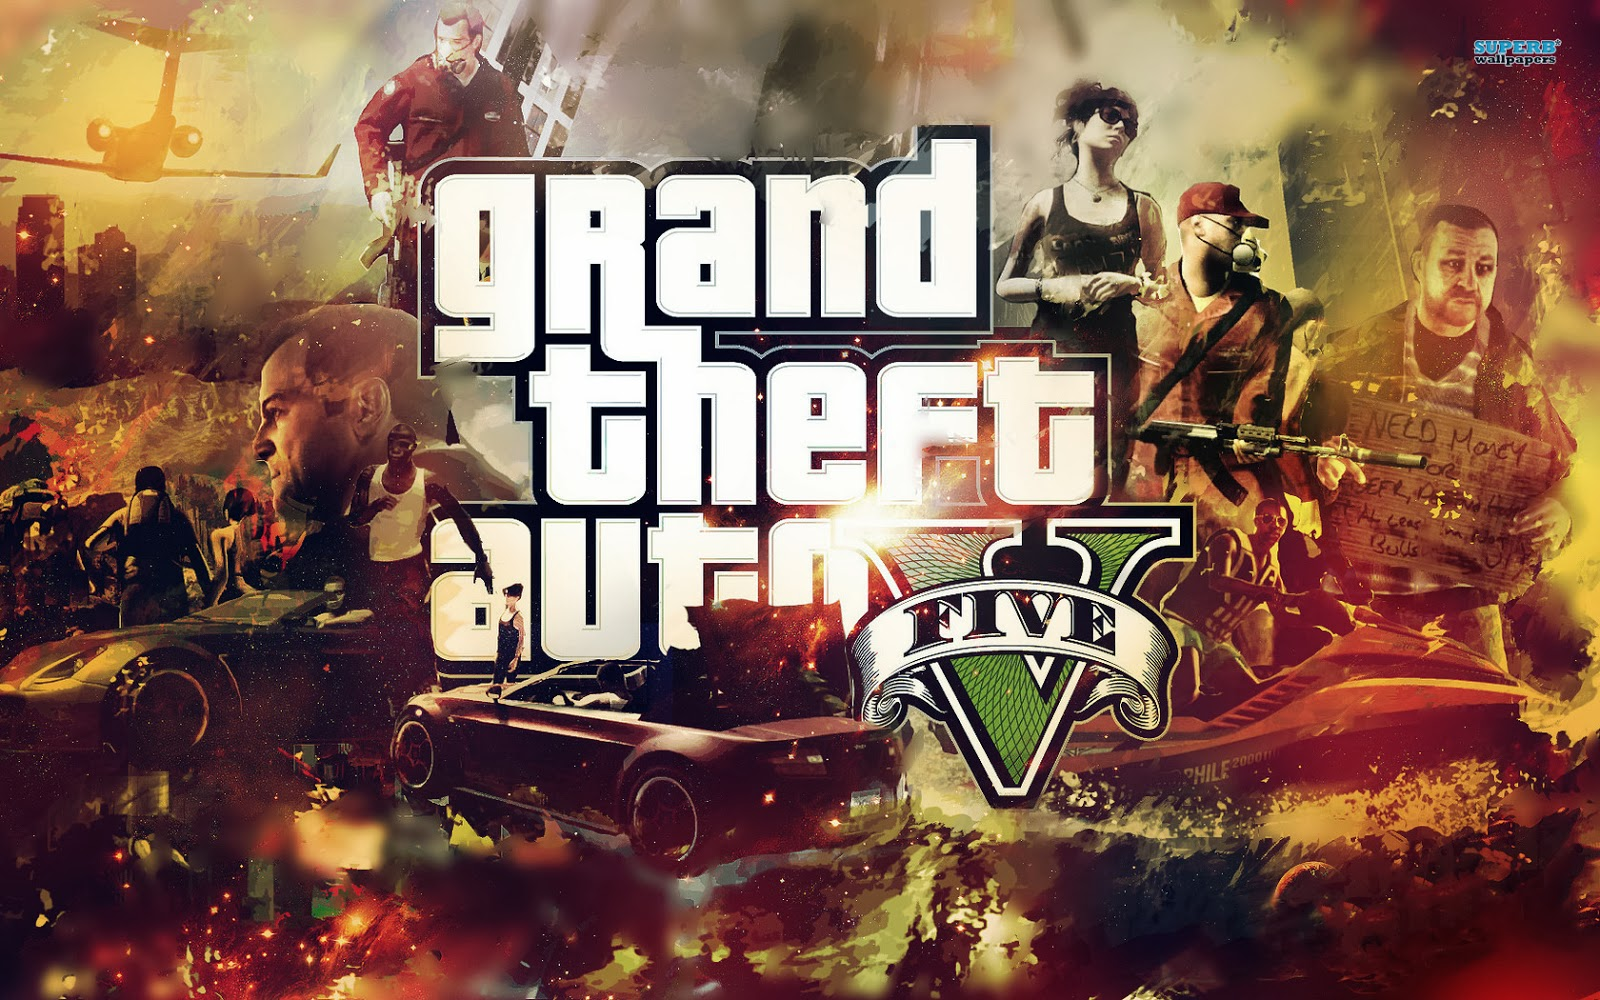 Grand Theft Auto V Wallpaper jpg 1600x1000